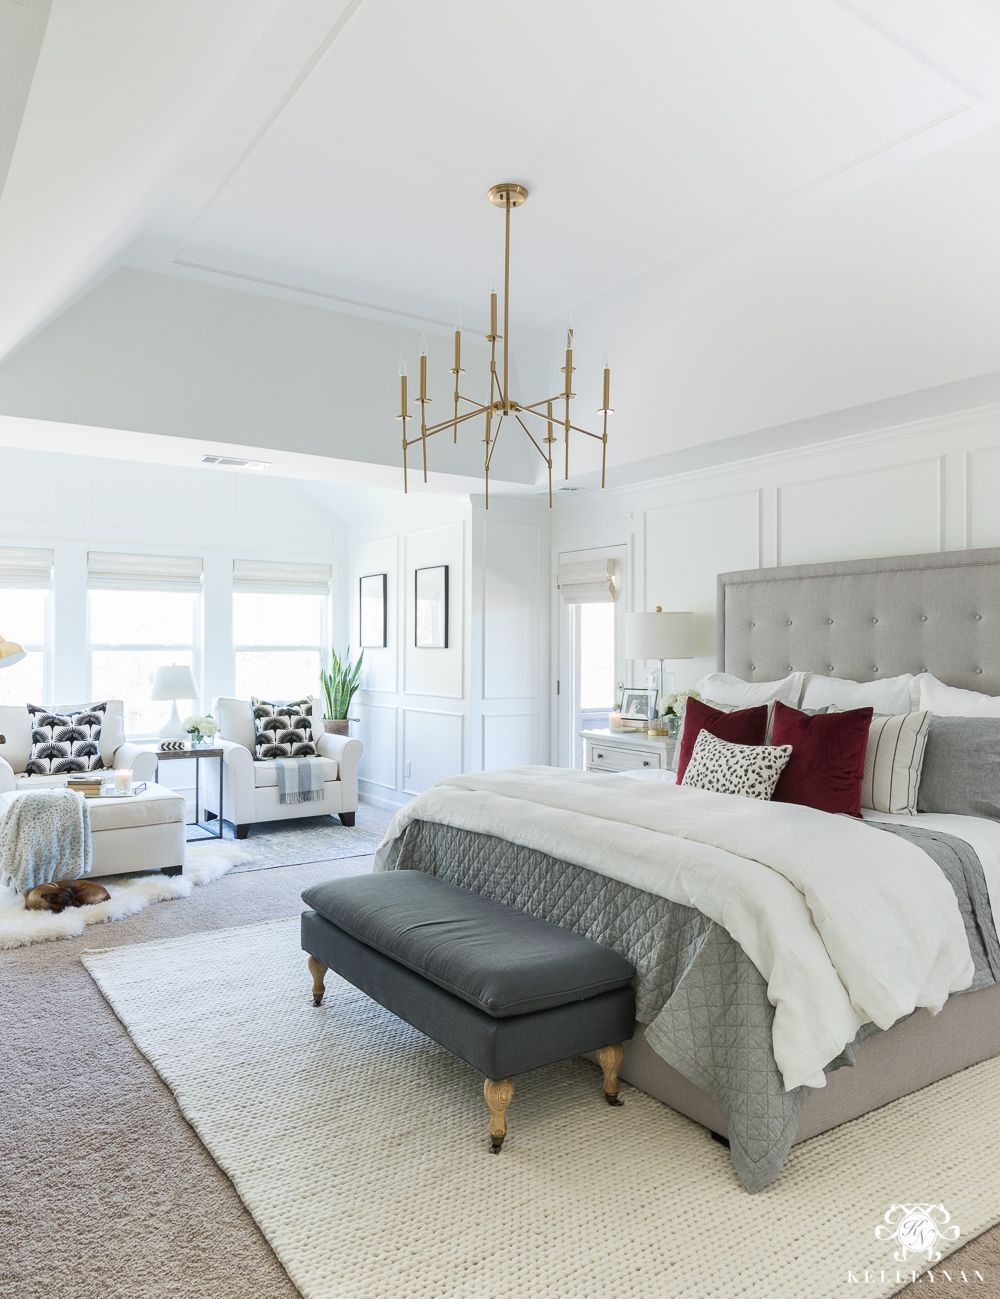 Bedroom Design Ideas With Gray Tufted Headboard Bedrooms In 2019 White Master Bedroom Master Bedroom Makeover Bedroom Inspirations